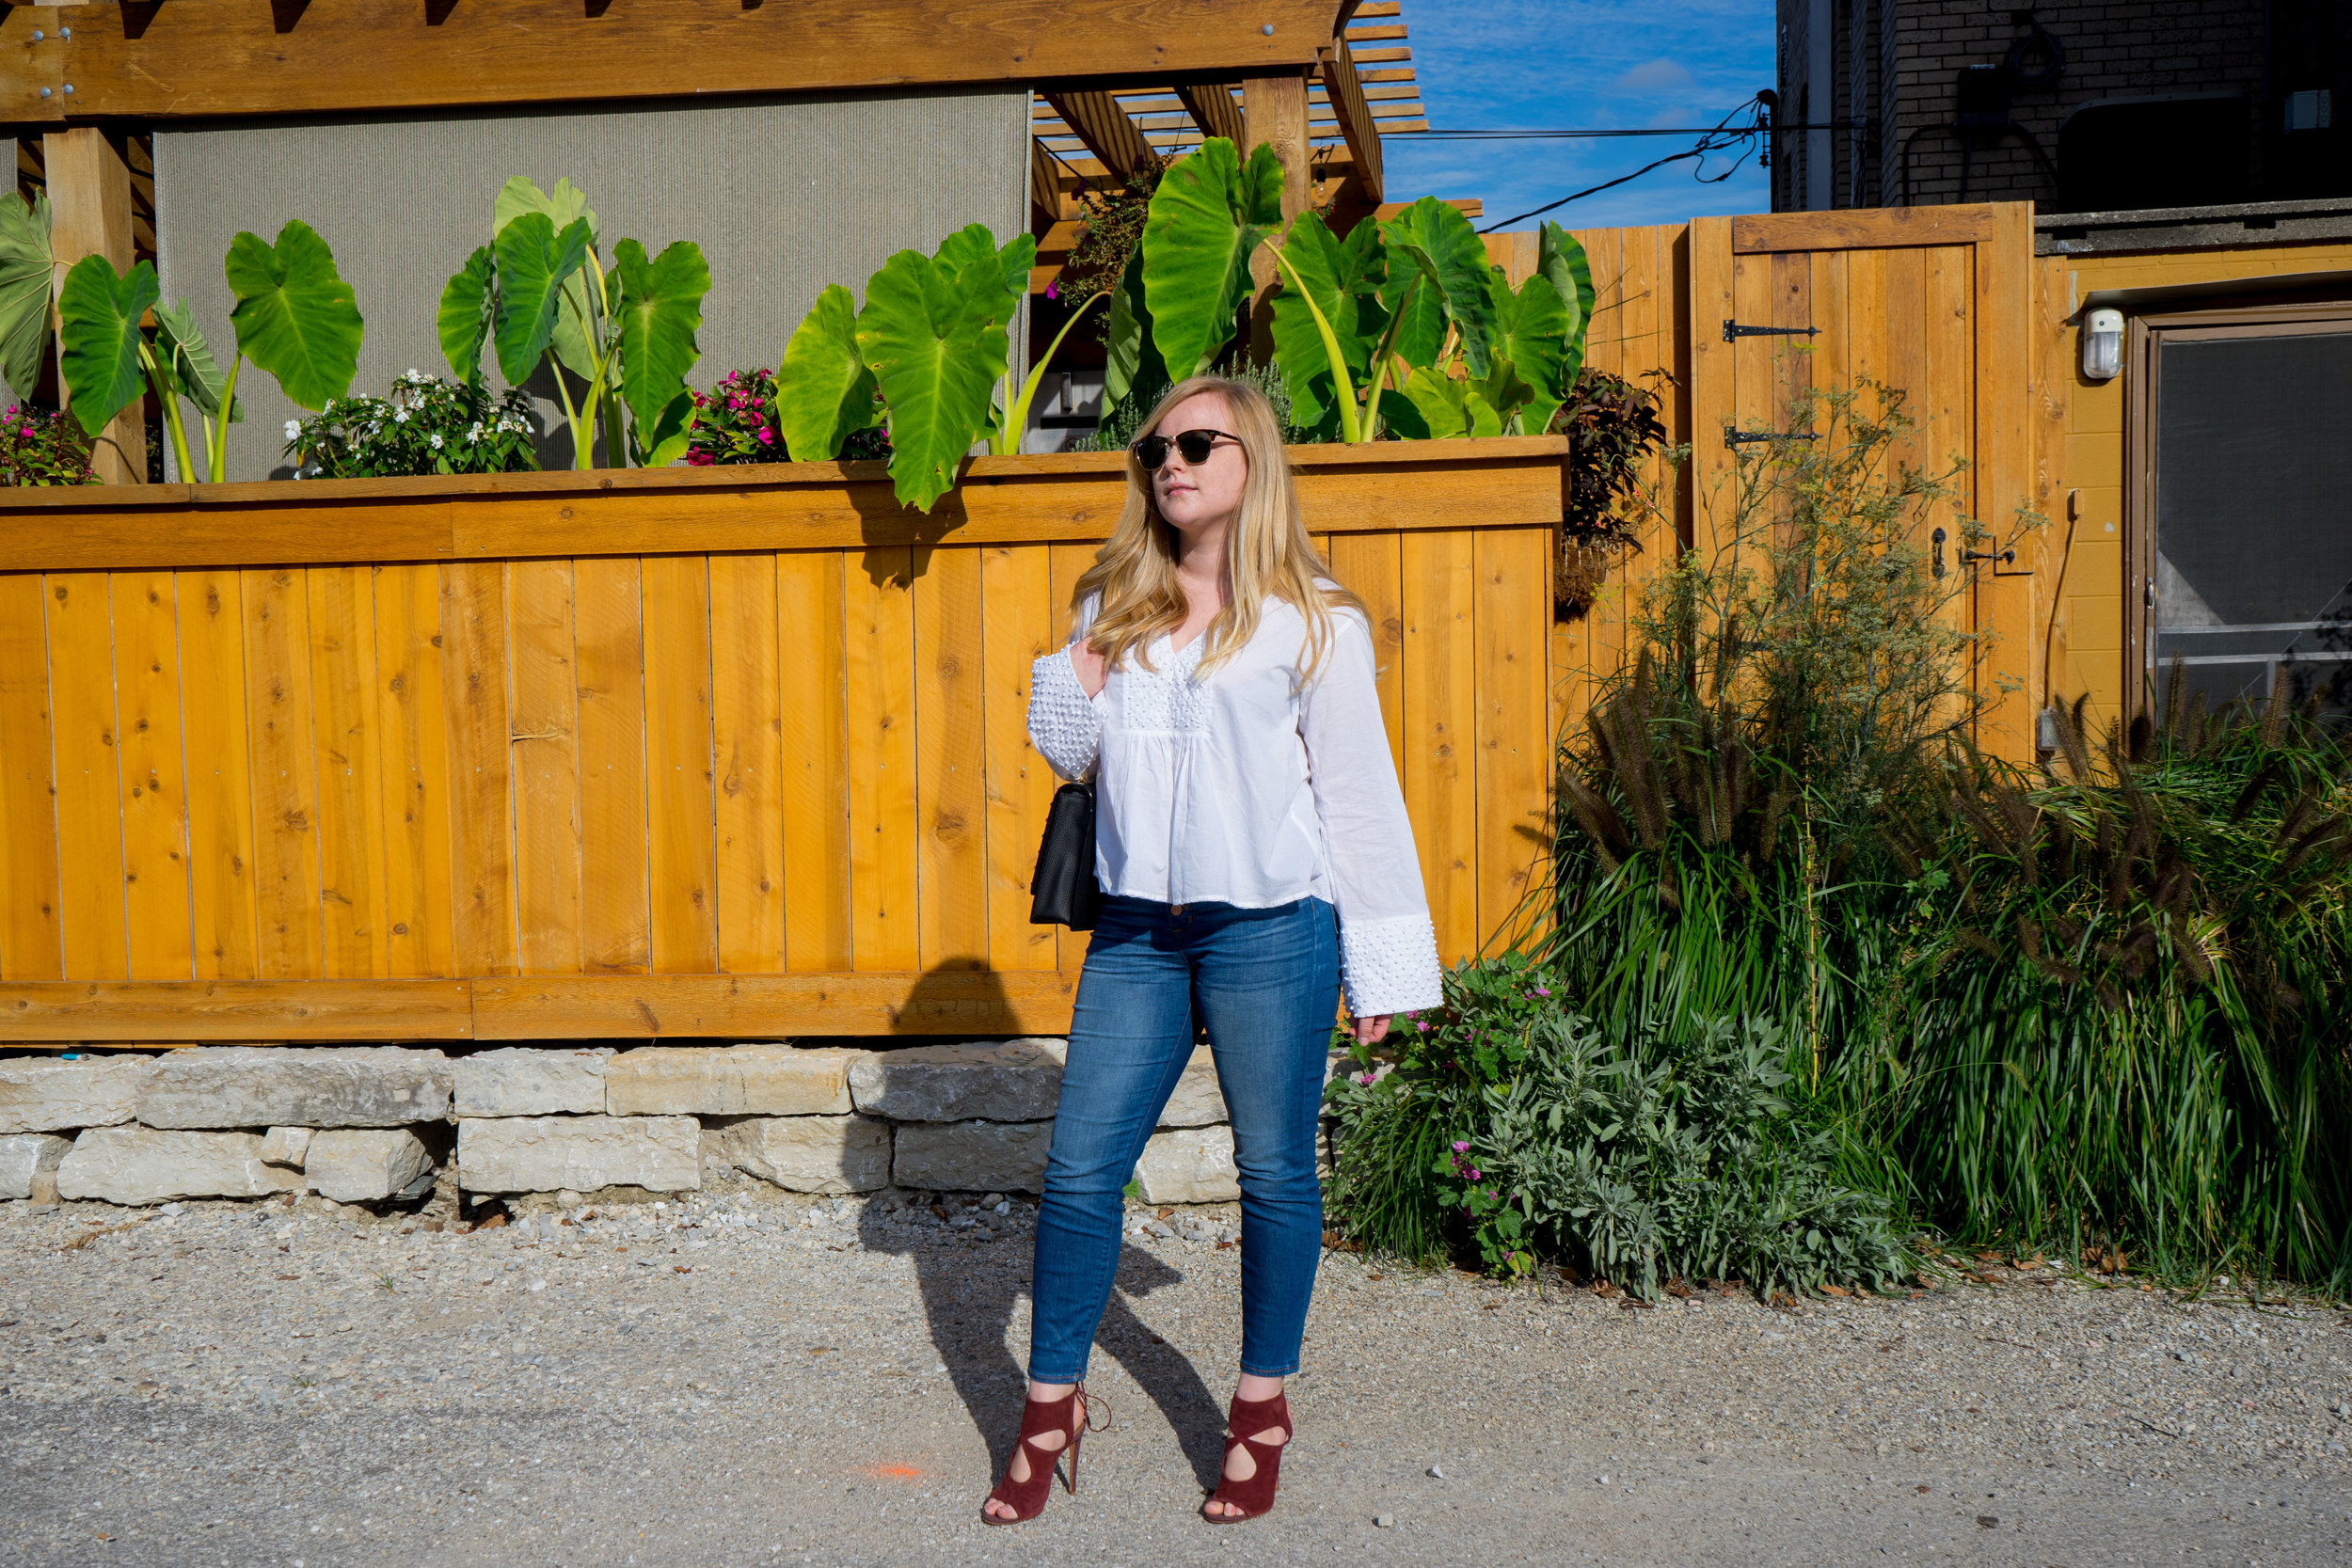 Maggie a la Mode - Kate Spade New York Devoe Street Sophie, Theory Matara Embroidered Cotton Blouse, J Crew toothpick jean Daly, Aquazzura Sexy Thing, Ray Ban Clubmaster